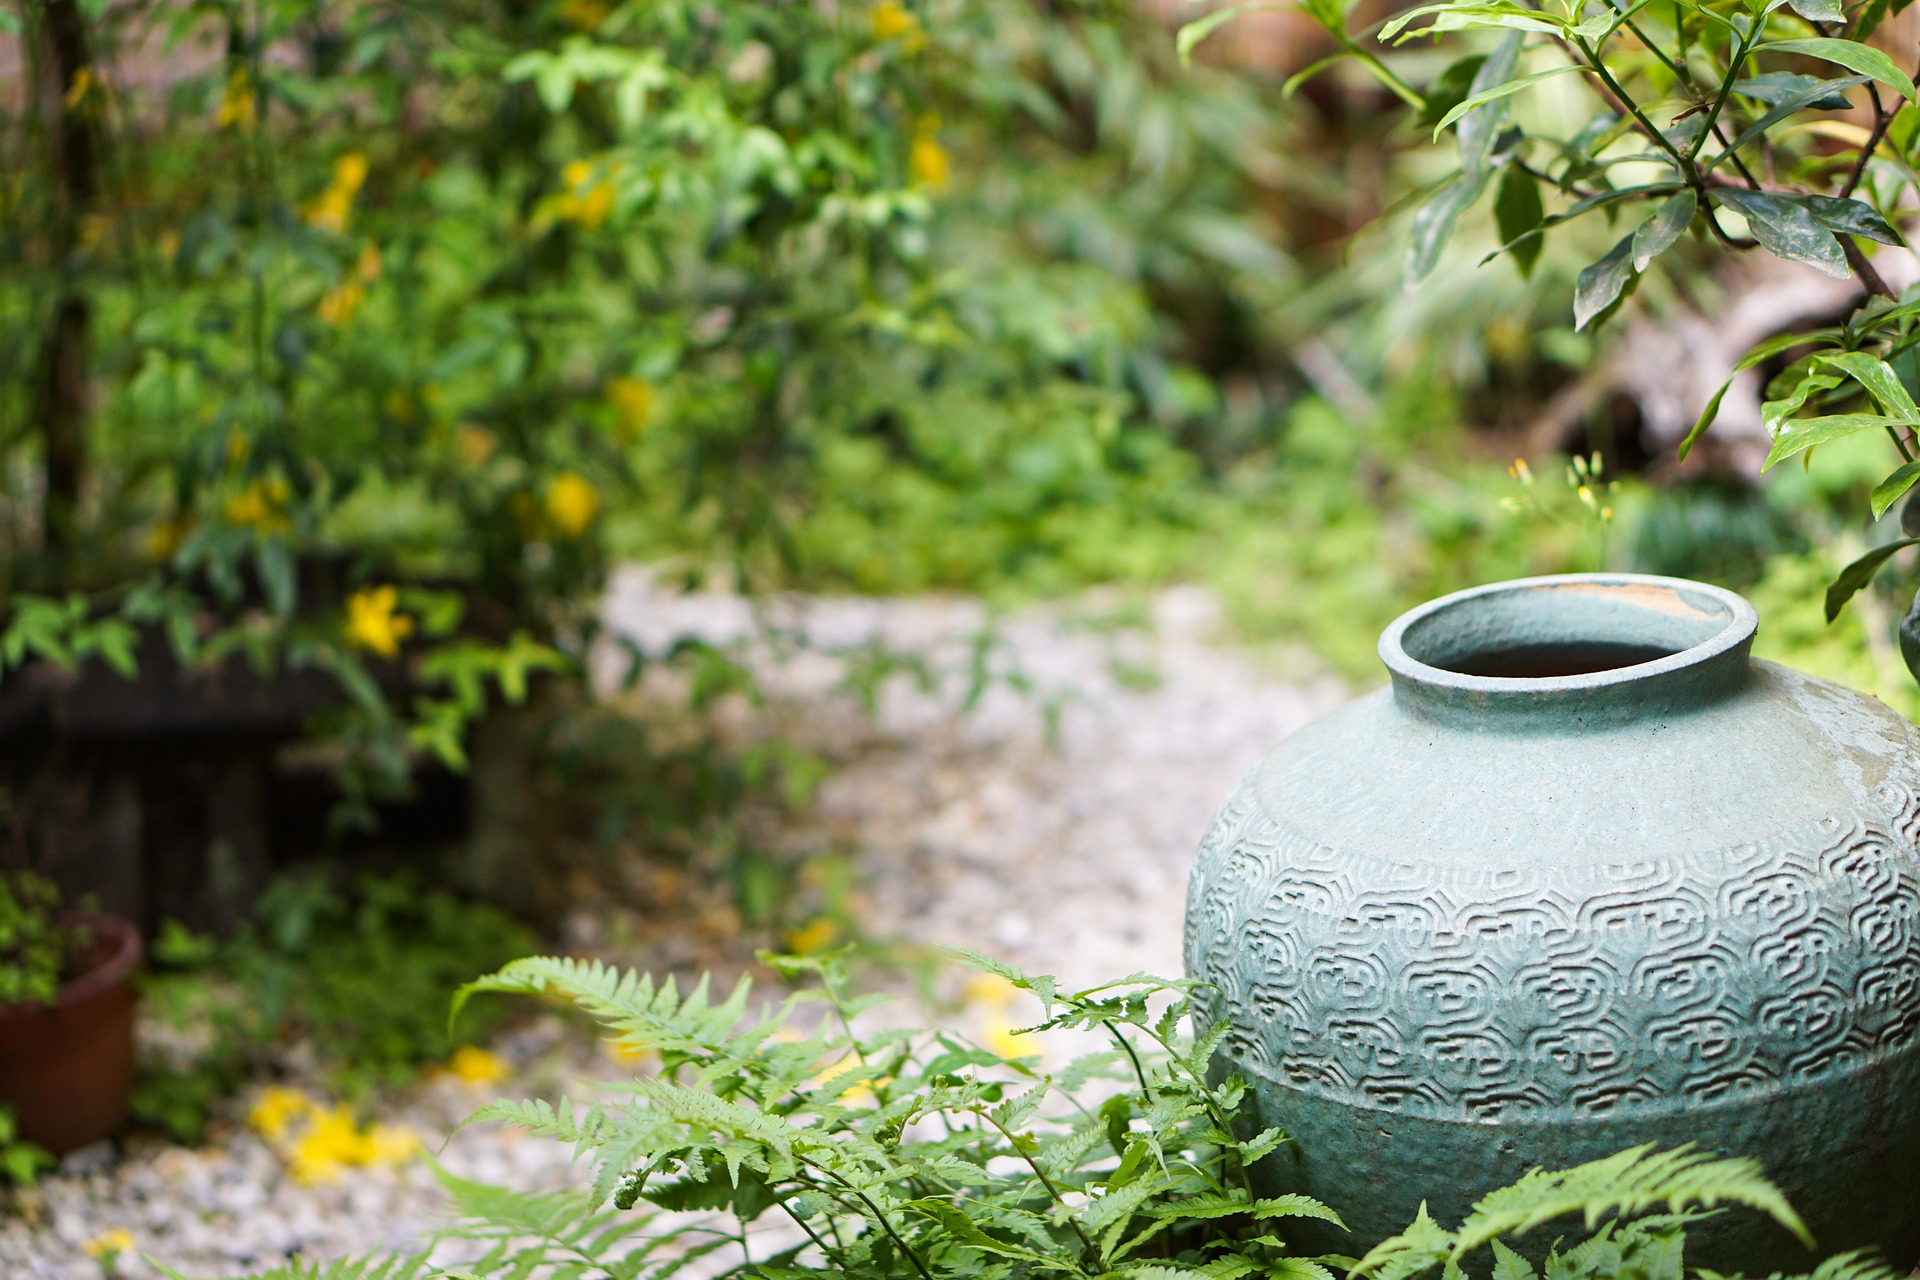 Green big ceramic jar in a garden.